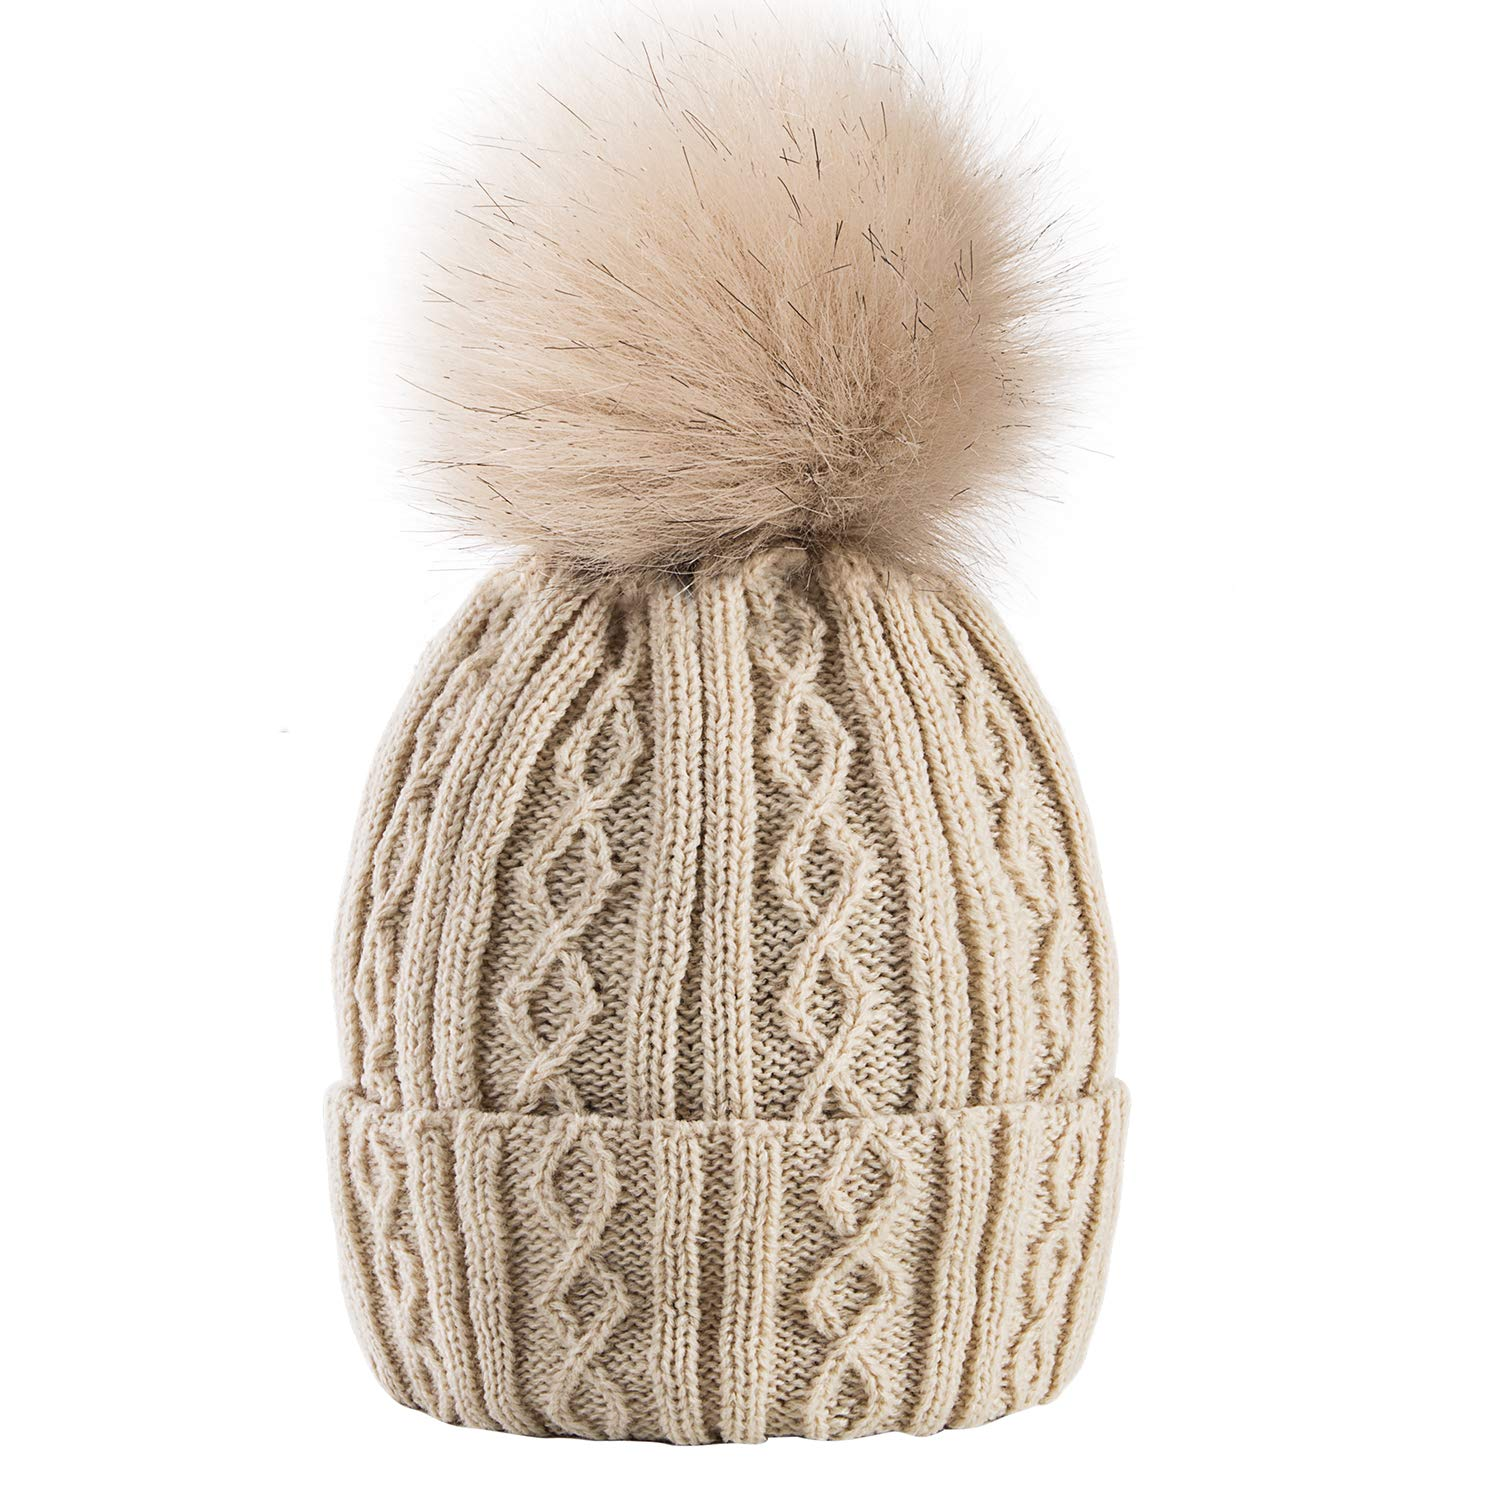 6b46901353b58 AXYOFSP Women Winter Pom Pom Beanie Hat with Warm Fleece Lined ...